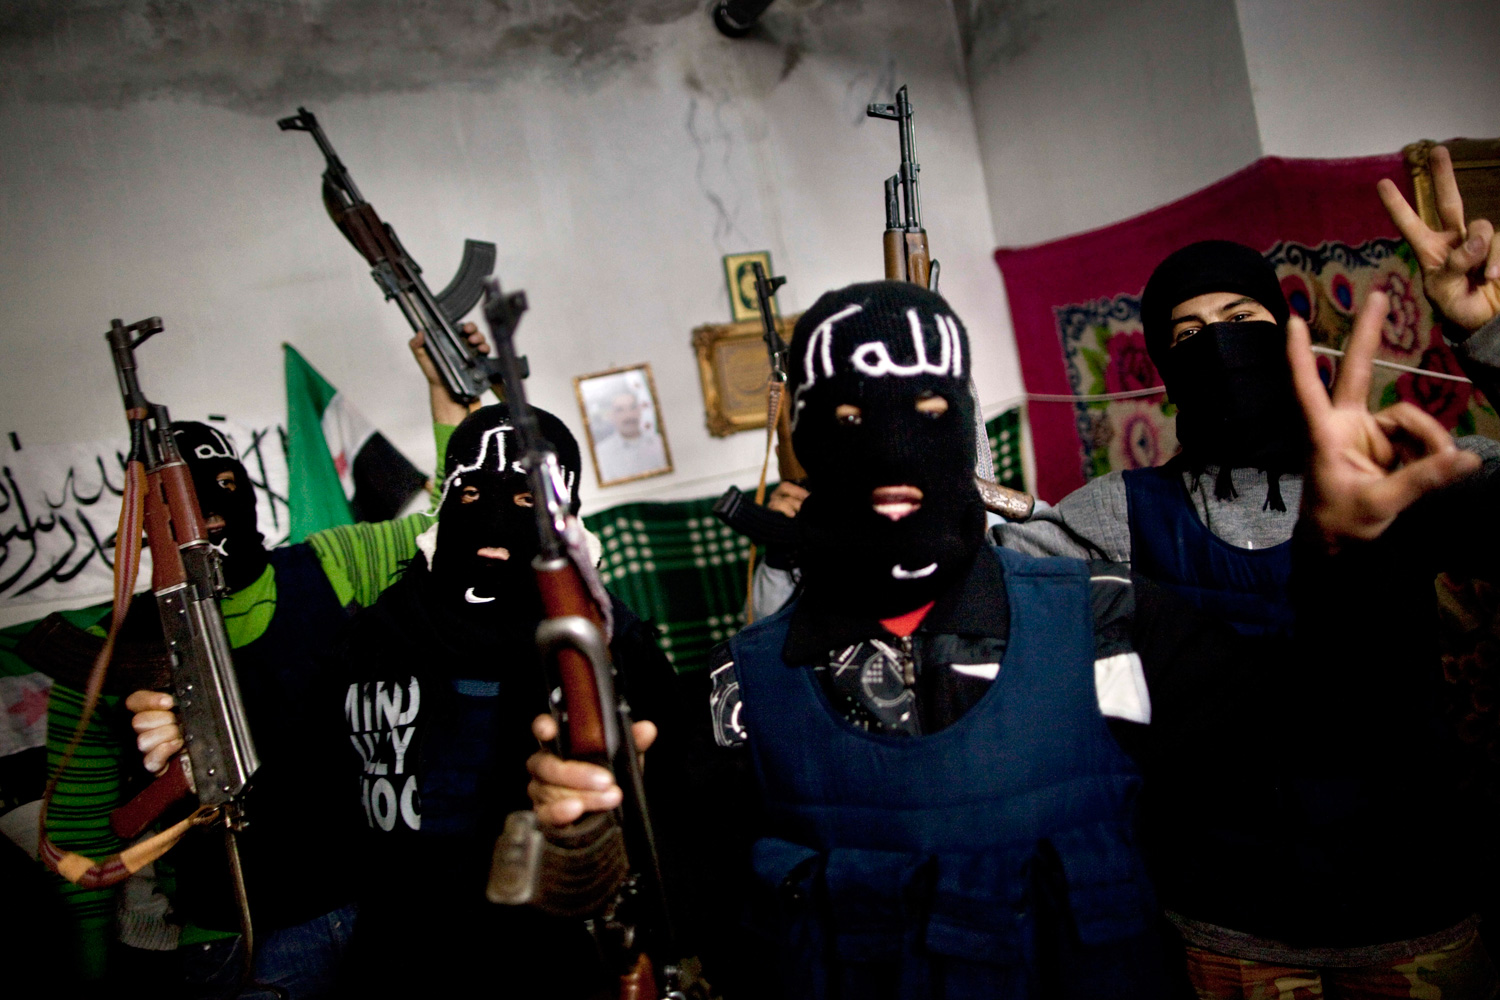 March 8, 2012. Free Syrian Army fighters gather after swearing to the Koran to fight against government troops until the last soldier is alive in Idlib, north Syria.